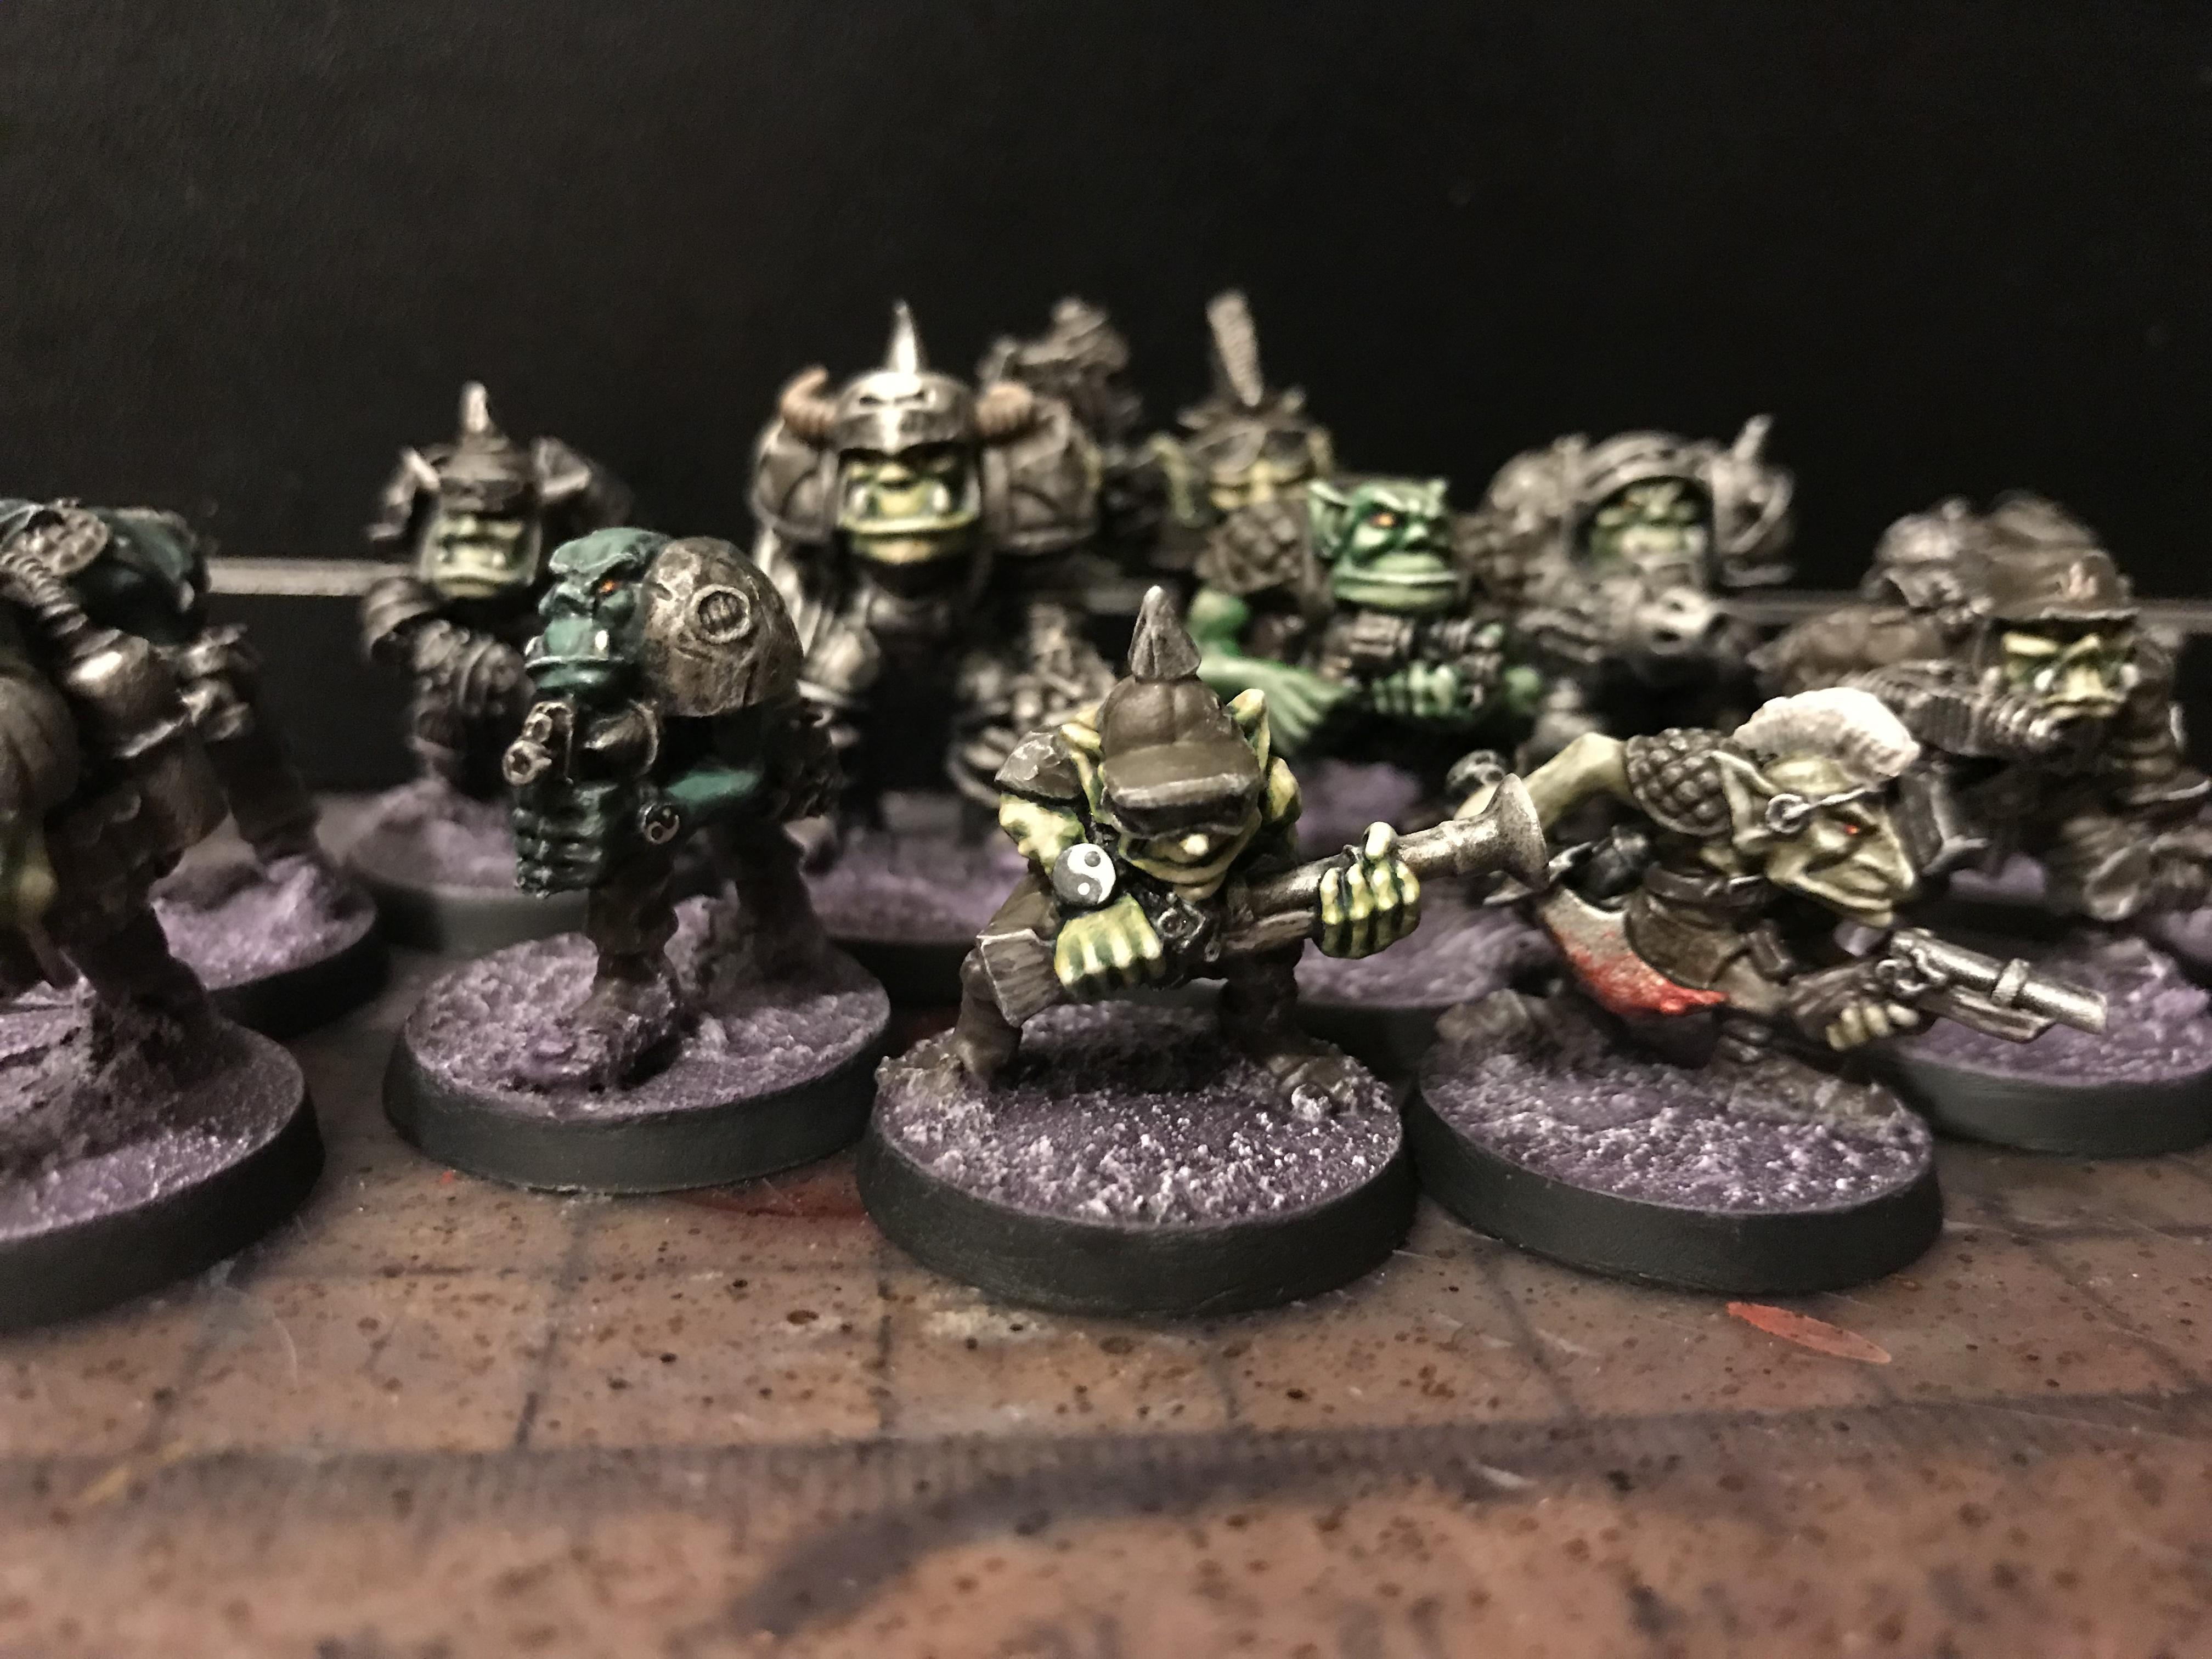 1st, Age, Armor, Army, Axes, Battle, Battles, Blood, Boy, Committee, Dark, Dark Angels, Darkness, Edition, Era, Evil, Folklore, Foundry, Gitz, Gloomspite, Goblinoid, Goblins, Grc, Green, Greenskin, Greenskinz, Gretchin, Grots, Horde, Leader, Looney, Mega, Mega Armored, Meganob, Miniatures, Mischievous, Mordheim, Mushrooms, Night, Nob, Of, Oldhammer, Orcoid, Orcs, Orks, Orky, Play, Powa, Power, Realm, Realms, Revolution, Revolutionary, Rogue, Role, Shroom, Shrooms, Skirmish, Small, Smol, Tiny, Trader, Warband, Warboss, Wargames, Wargaming, Warhammer 40,000, Warhammer Fantasy, Warmonger